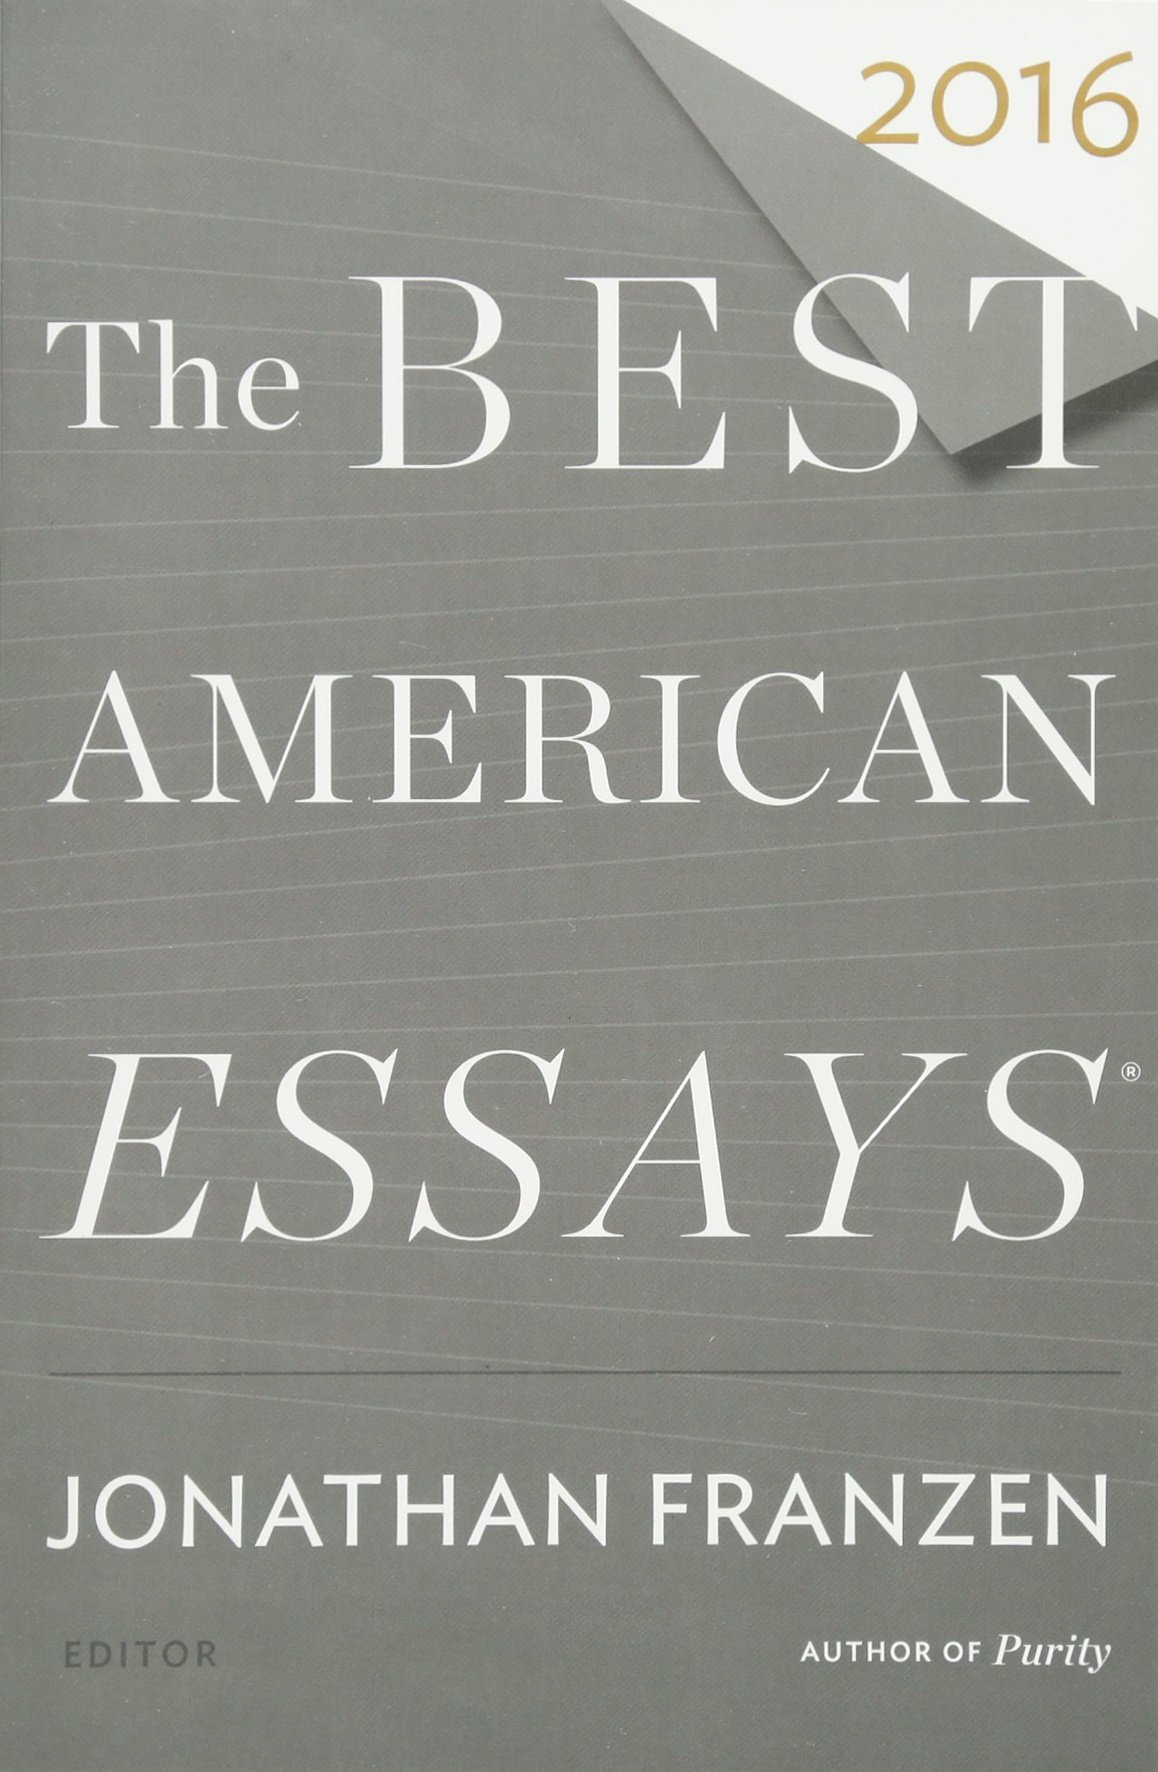 005 The Best American Essays Essay Example Wonderful Of Century Table Contents 2013 Pdf Download Full